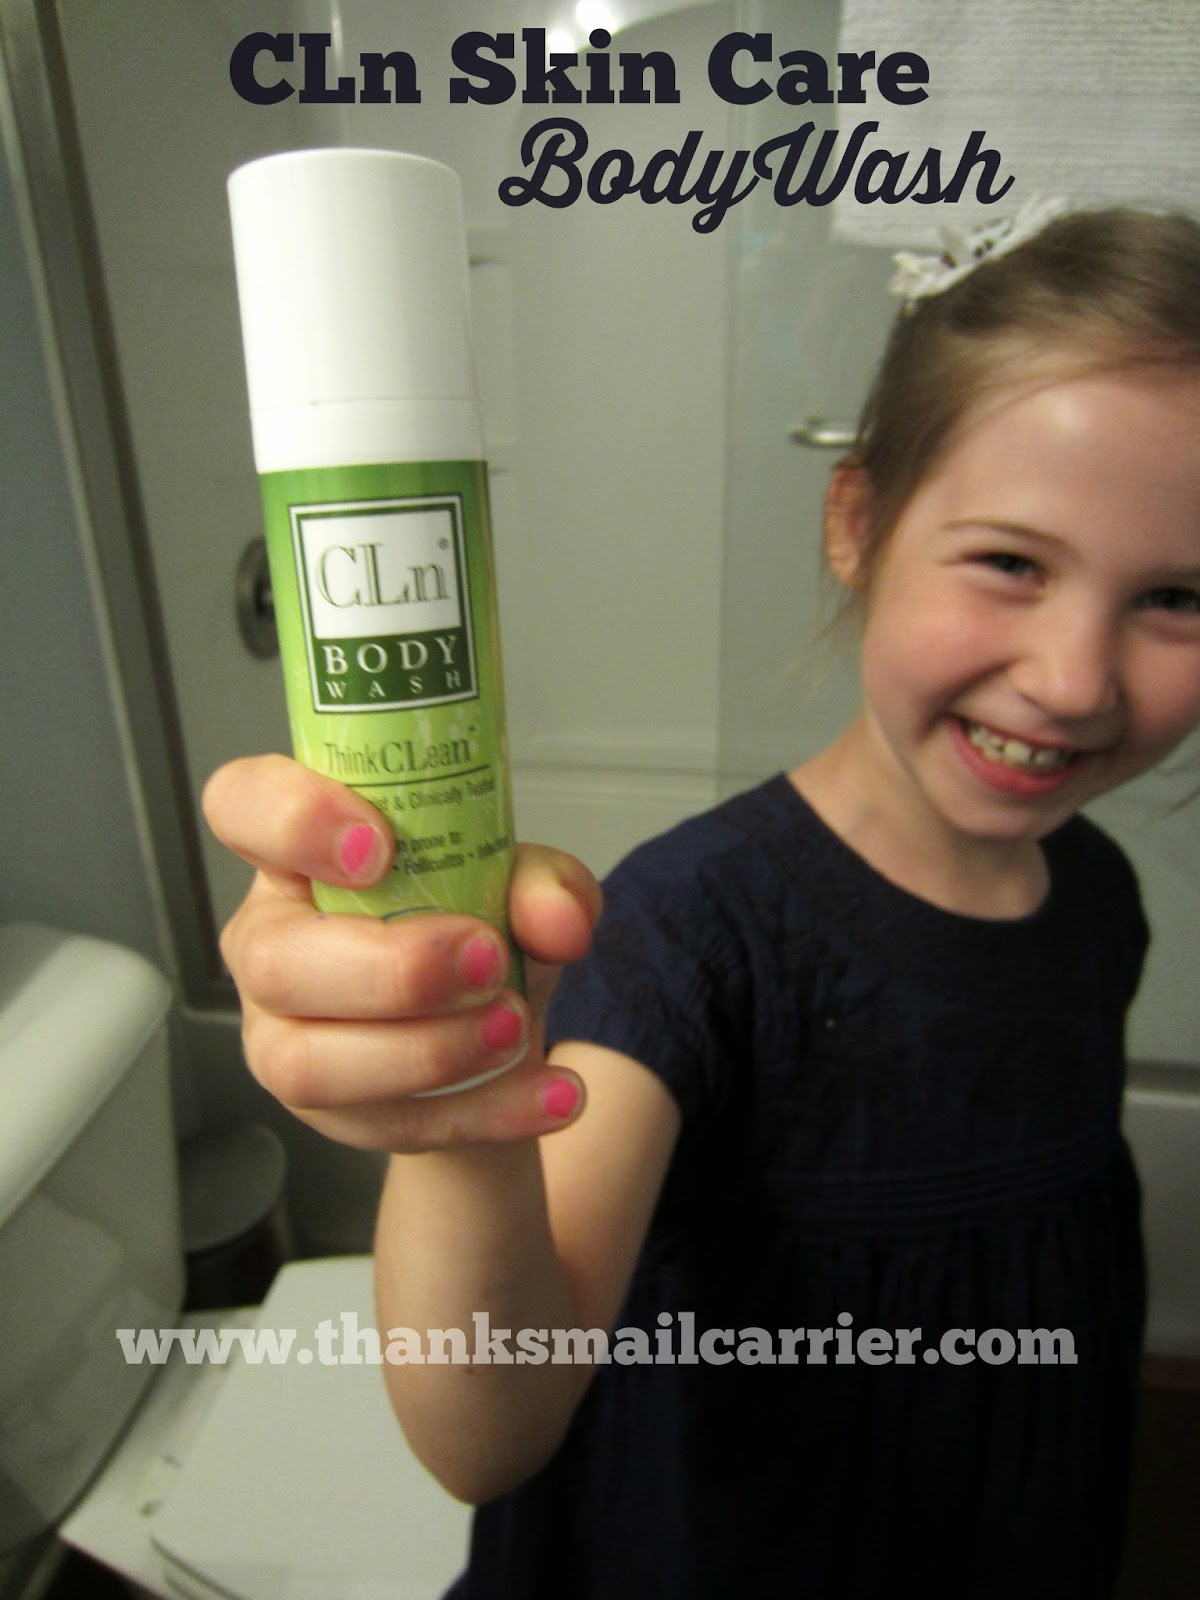 CLn BodyWash review